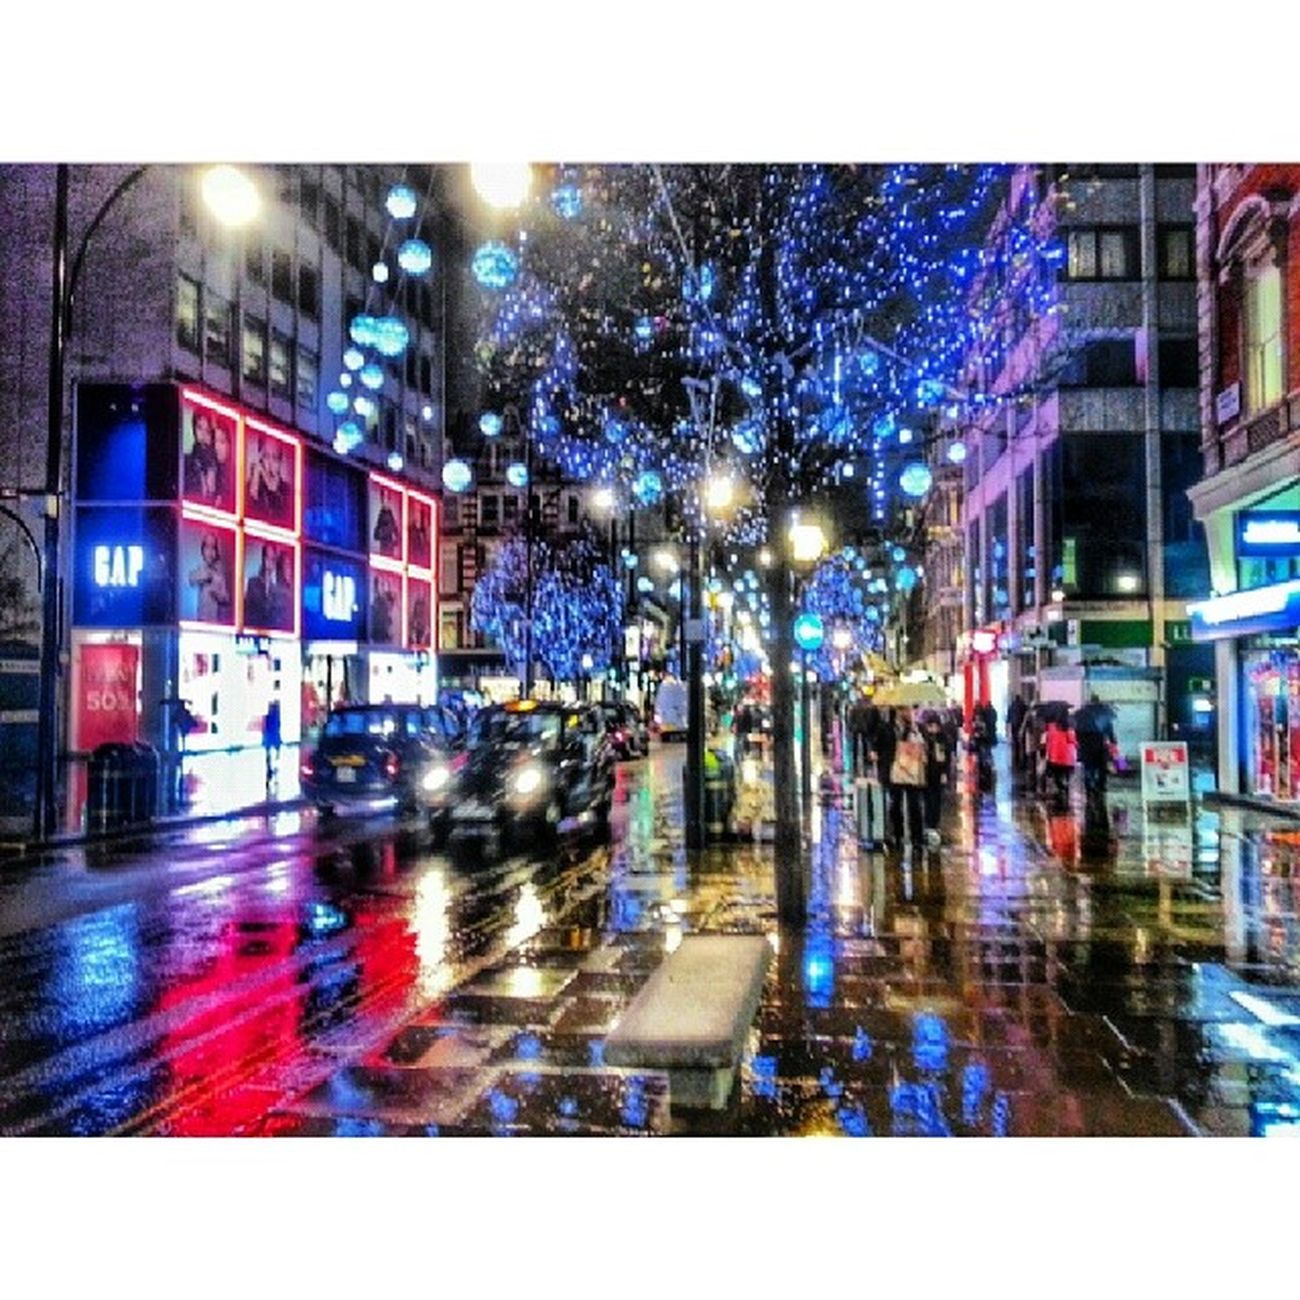 England London Londonstreet Ig_london instacool instagood tagsforlikes igdaily instadaily instaphoto ig_photo ig_mood instamood follow followme follower vsco vscoism vscocam vscogram photogram_tr photooftheday picoftheday turkishfollowers turkinstagram